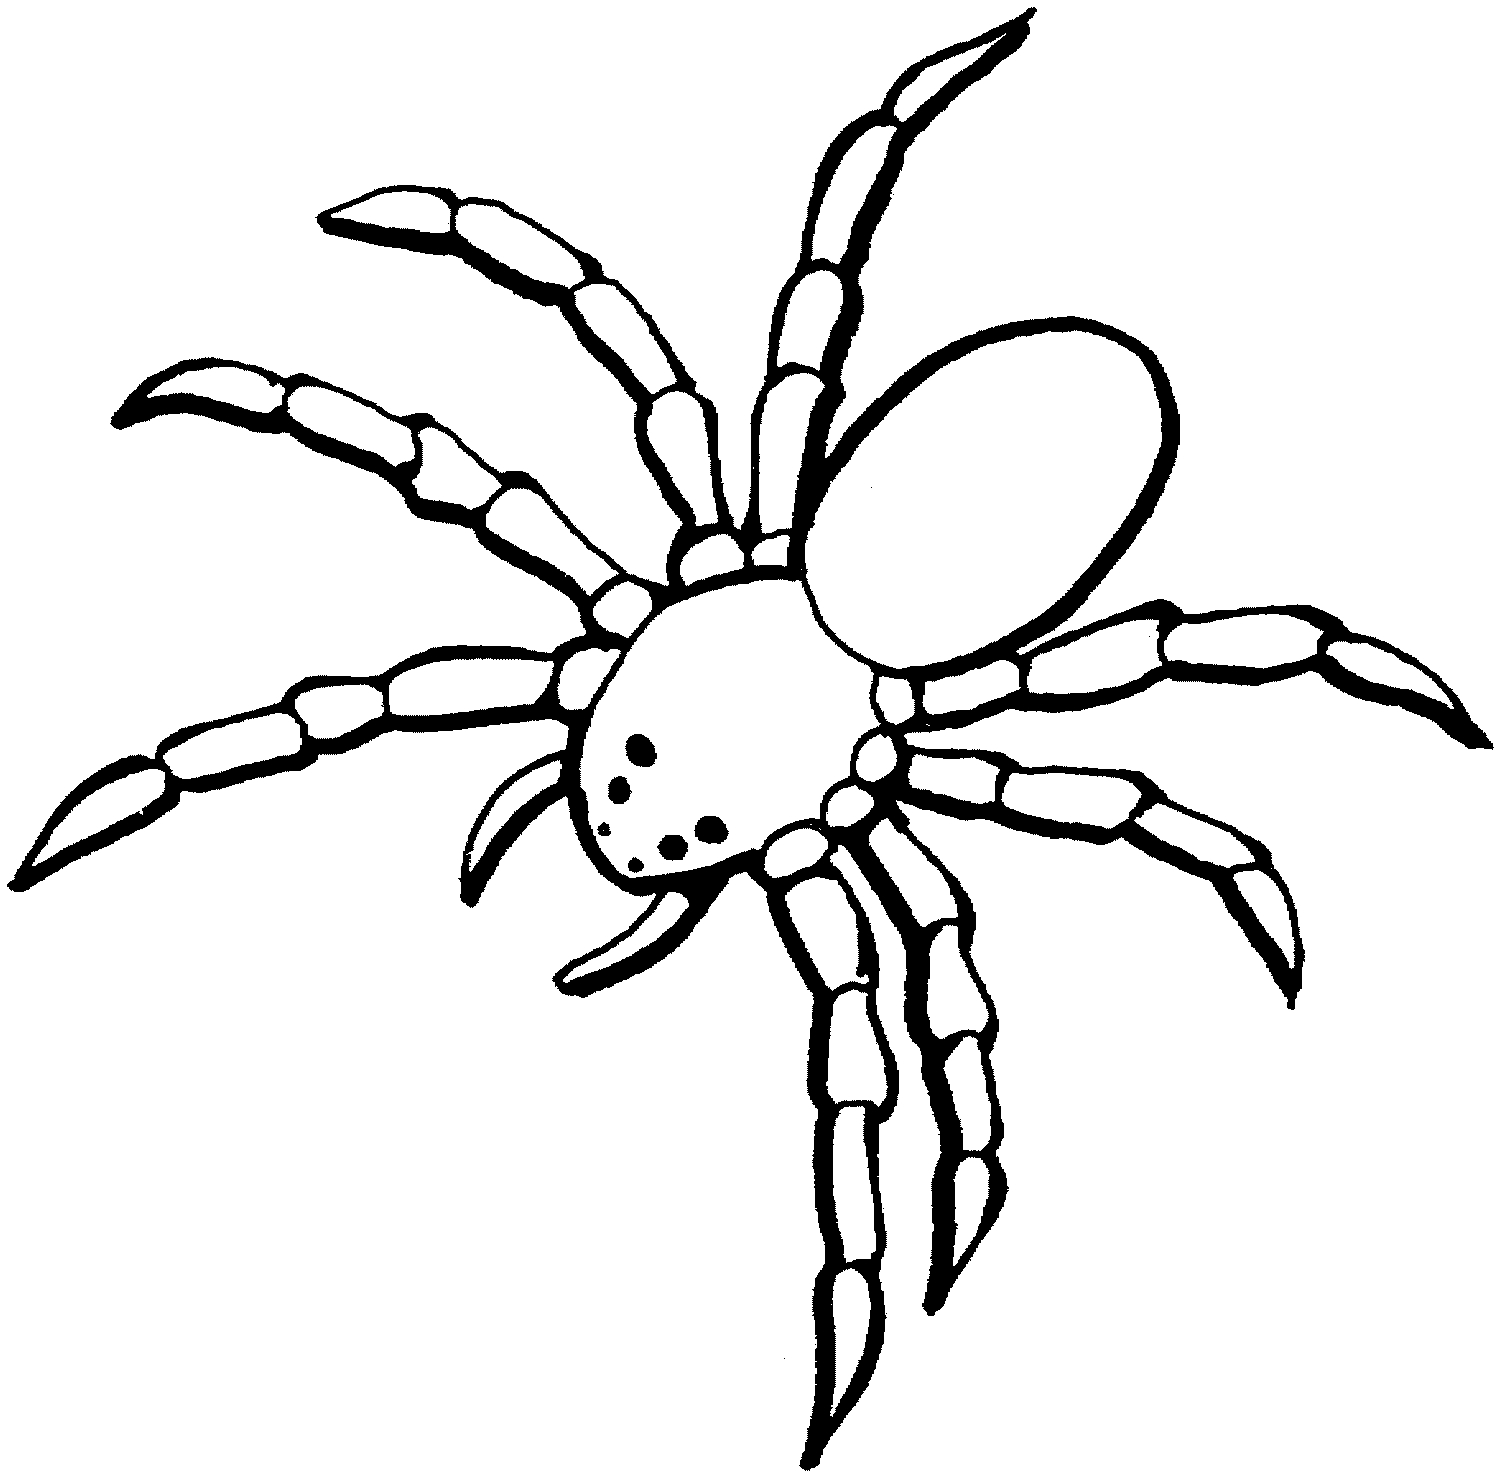 6865 Spider free clipart.